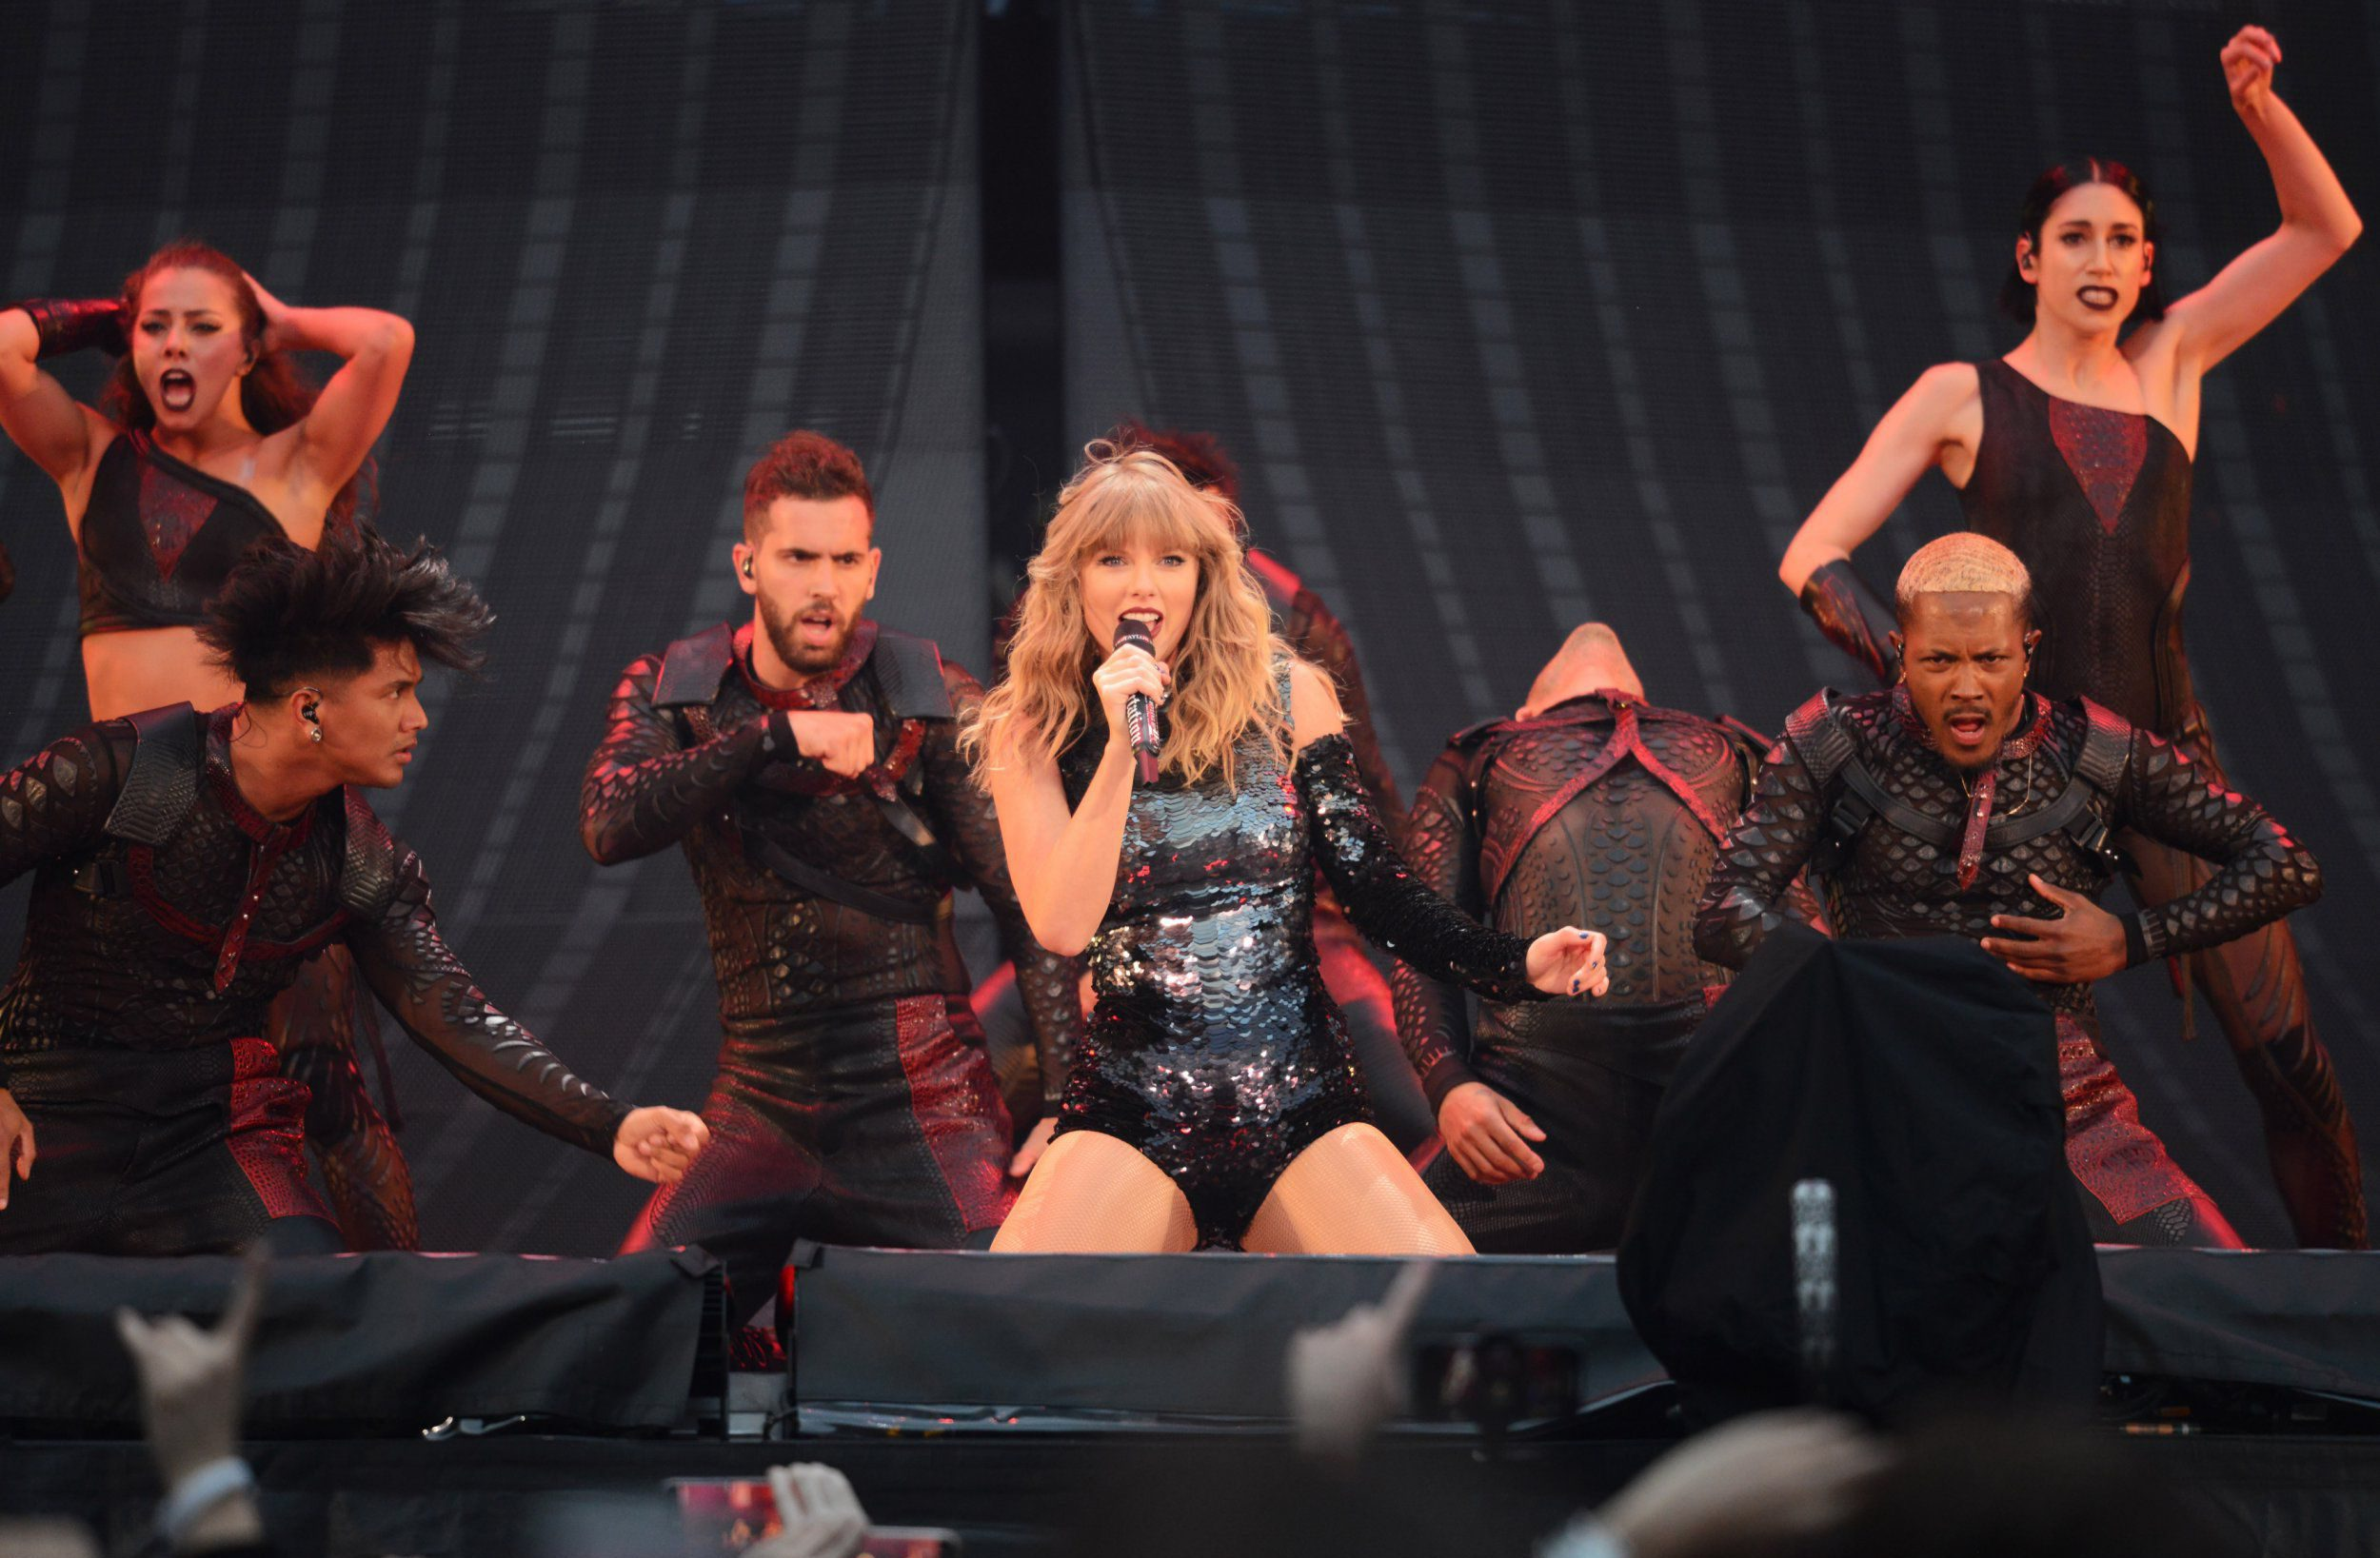 MANCHESTER, ENGLAND - JUNE 08: Taylor Swift performs on stage during the Taylor Swift reputation Stadium Tour at Etihad Stadium on June 8, 2018 in Manchester, England. (Photo by Dave Hogan/TAS18/Dave Hogan/Getty Images)